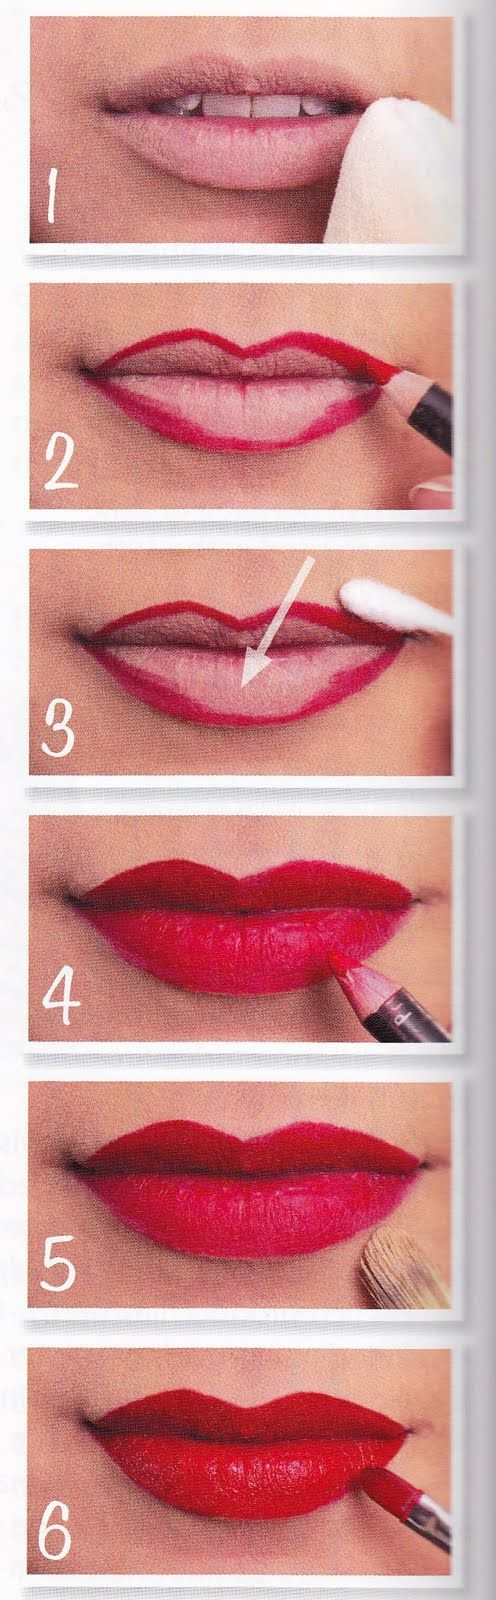 "How to properly apply the perfect red lips! From the book ""Retro Makeup"" by Lauren Rennells: Red Lipsticks, Perfect Lips, Lips Makeup, Redlip, Lips Liner, Perfect Red Lips, Makeup Lessons, Proper Applying, Retro Makeup"